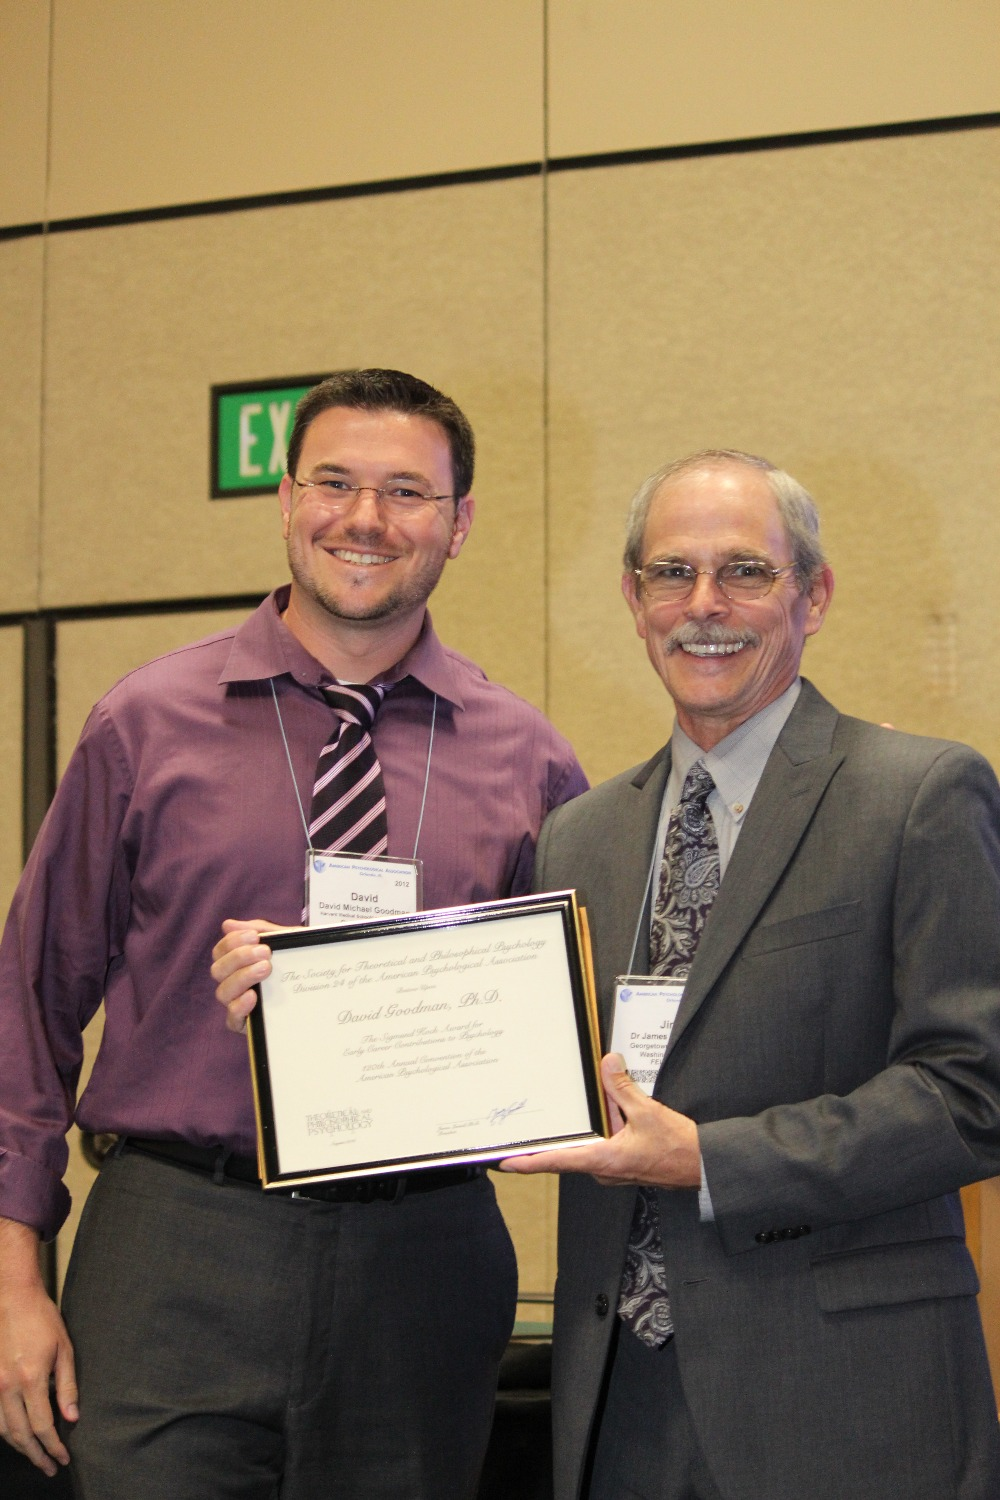 David Goodman receives the Sigmund Koch Award for Early Career Contribution to Psychology Aug 4 2012